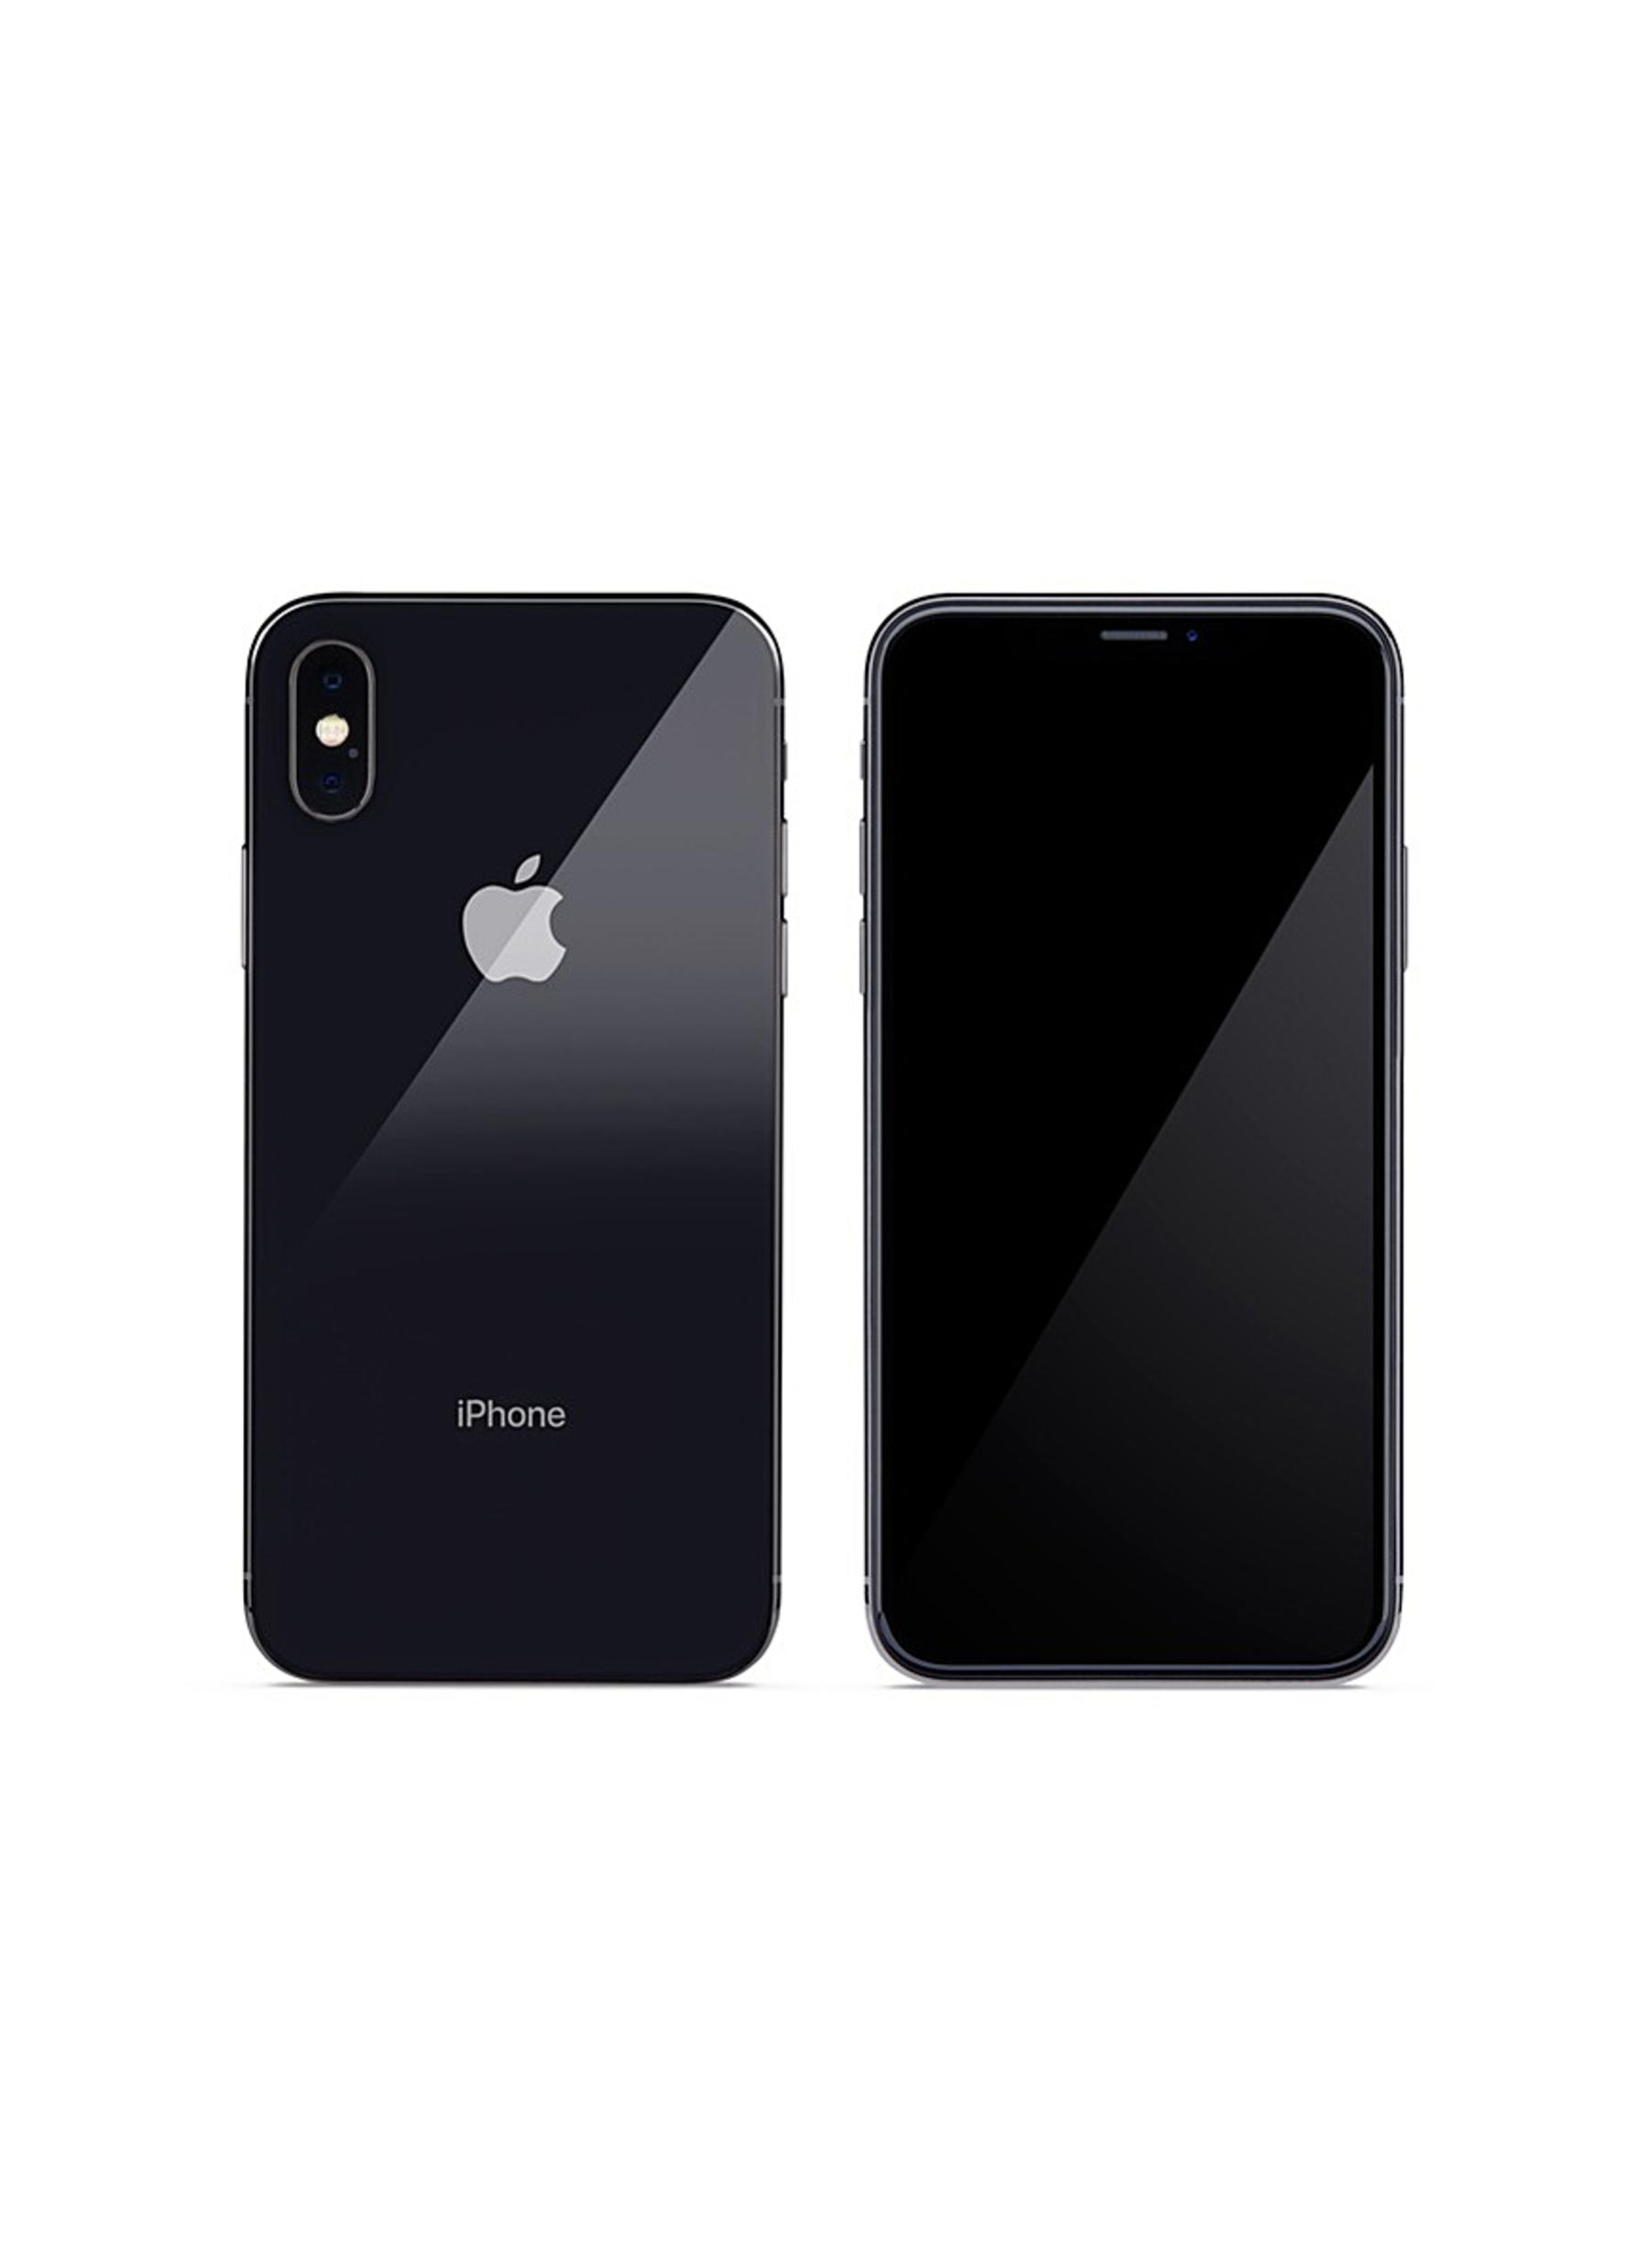 Apple Iphone X 256gb Space Grey Women Lane Crawford Native Union Eclipse Charger Fabric Slate Main View Click To Enlarge